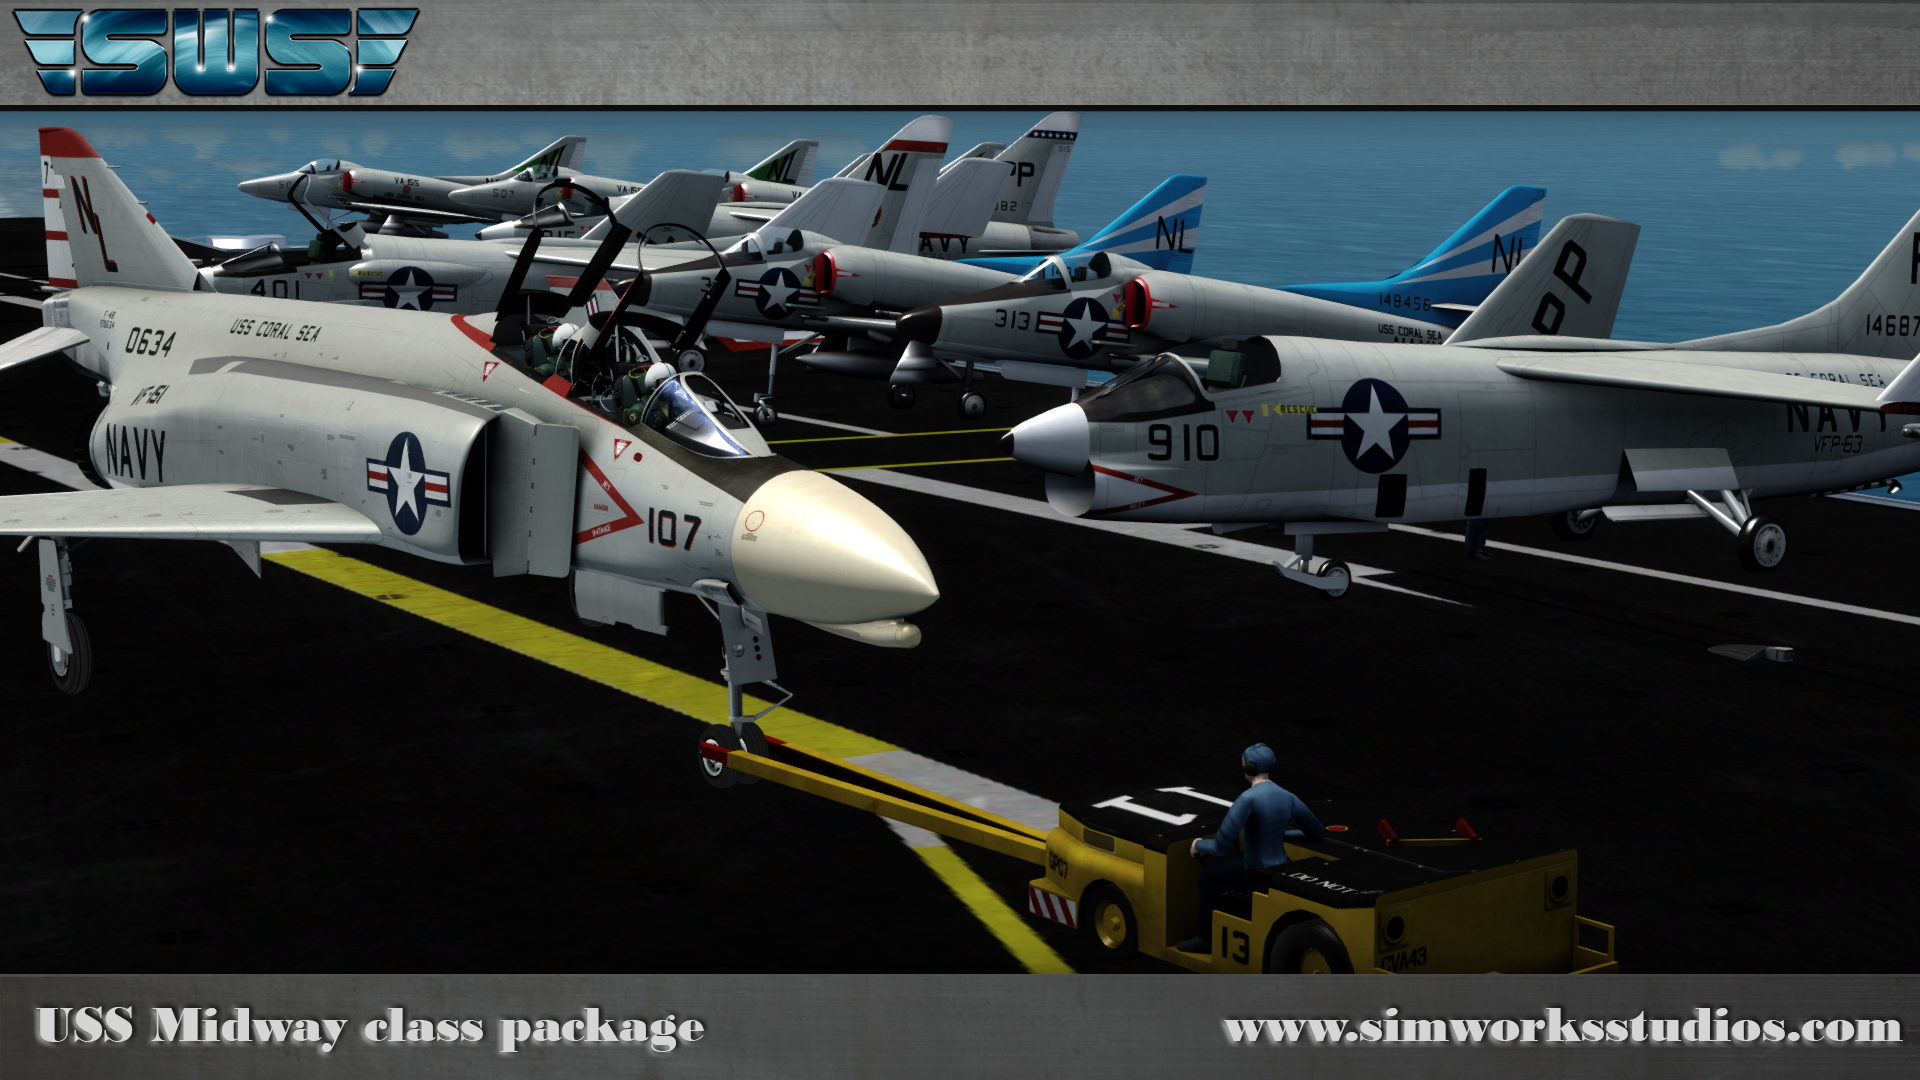 SIMWORKS STUDIOS - SWS MIDWAY BATTLEGROUP FSX P3D